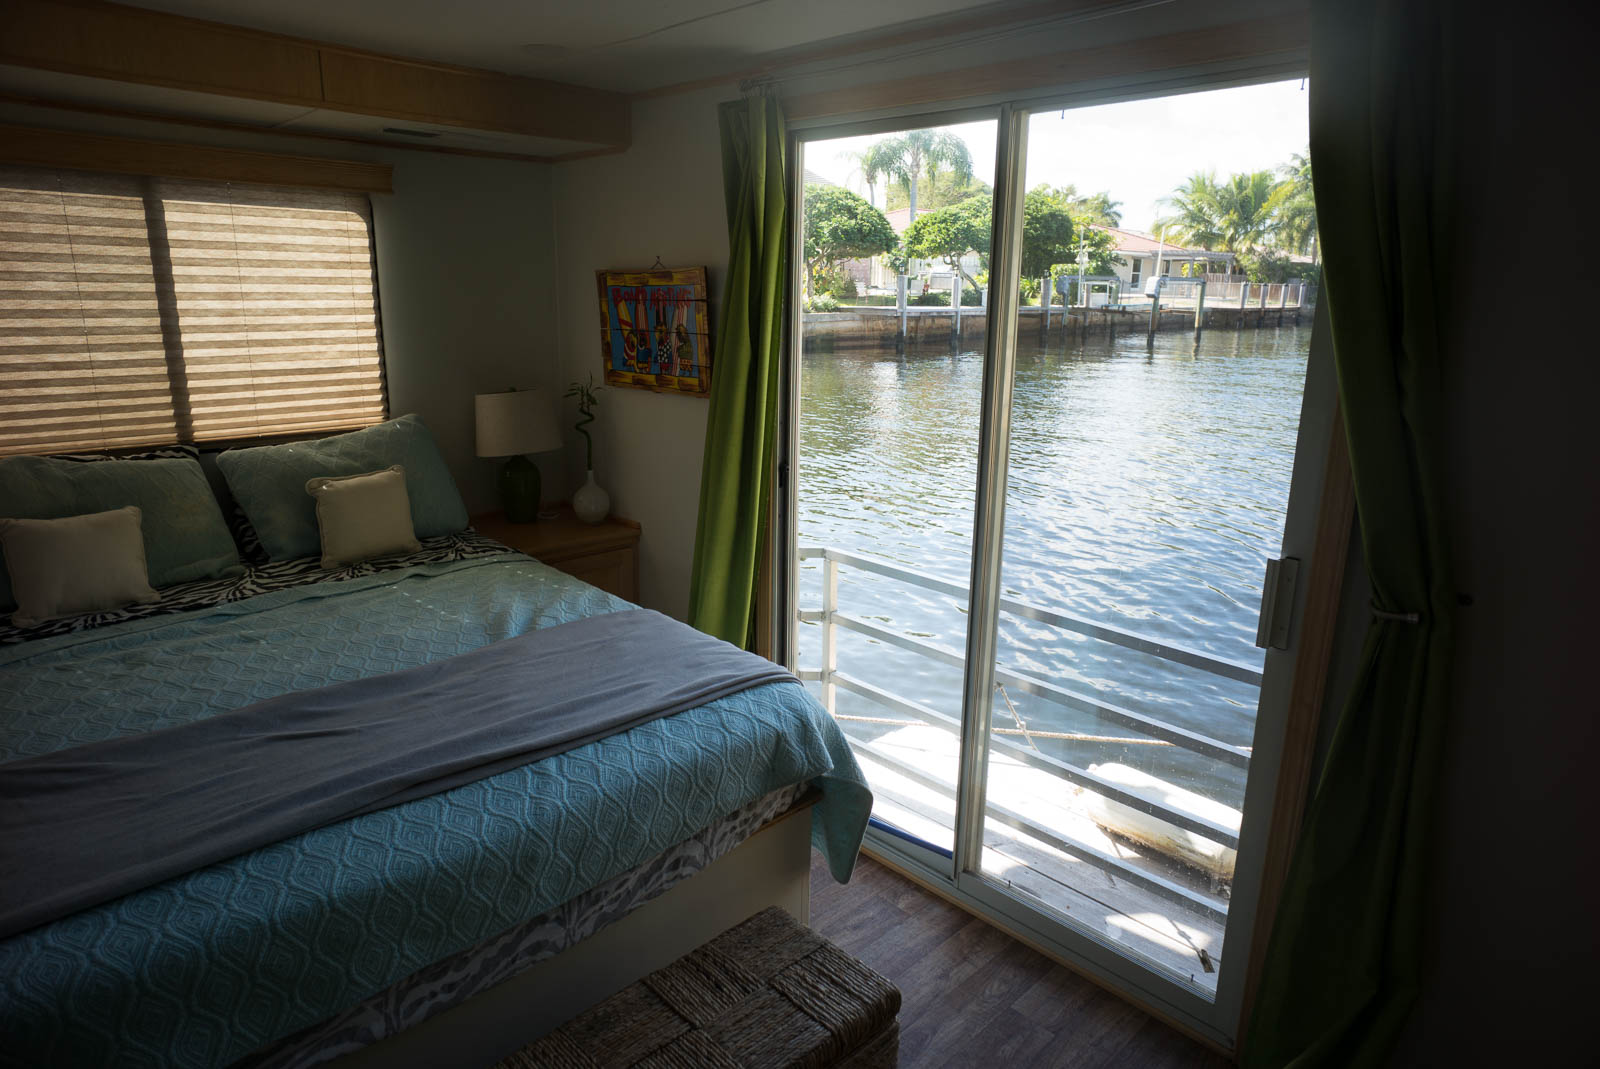 House Boat, Fort Lauderdale, USA